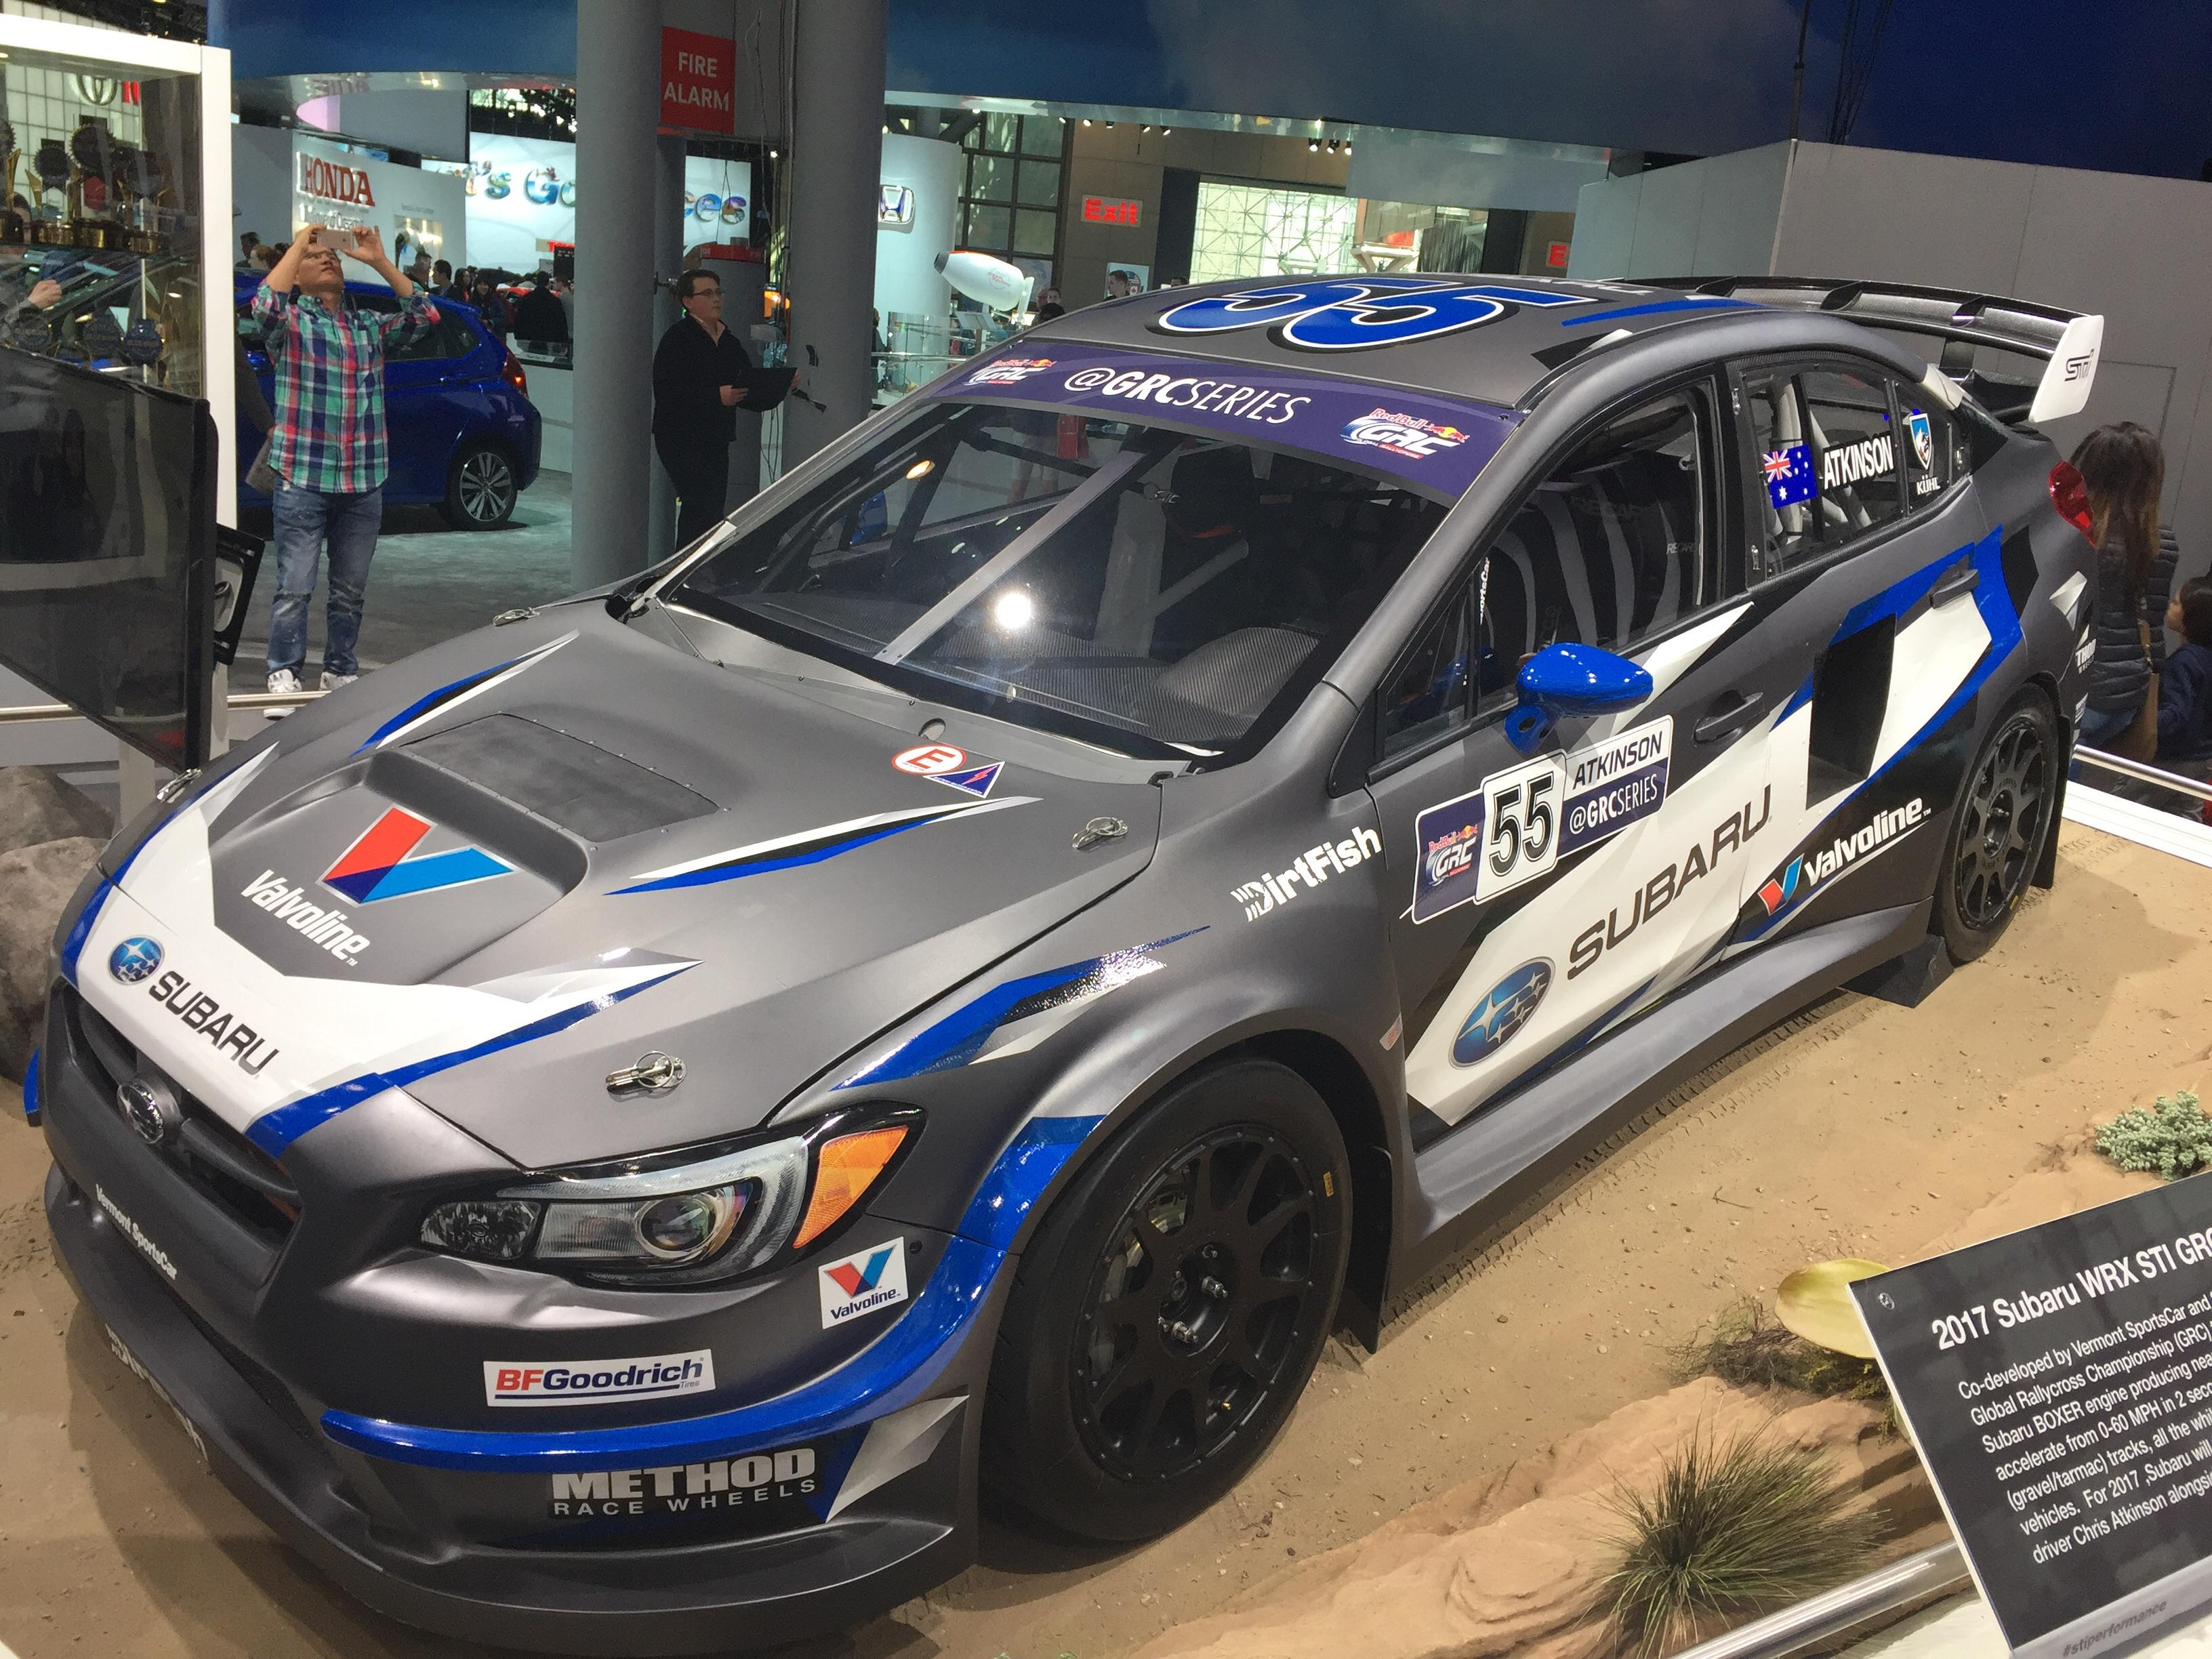 OC 2017 Subaru WRX STI Redbull Global Rallycross Car